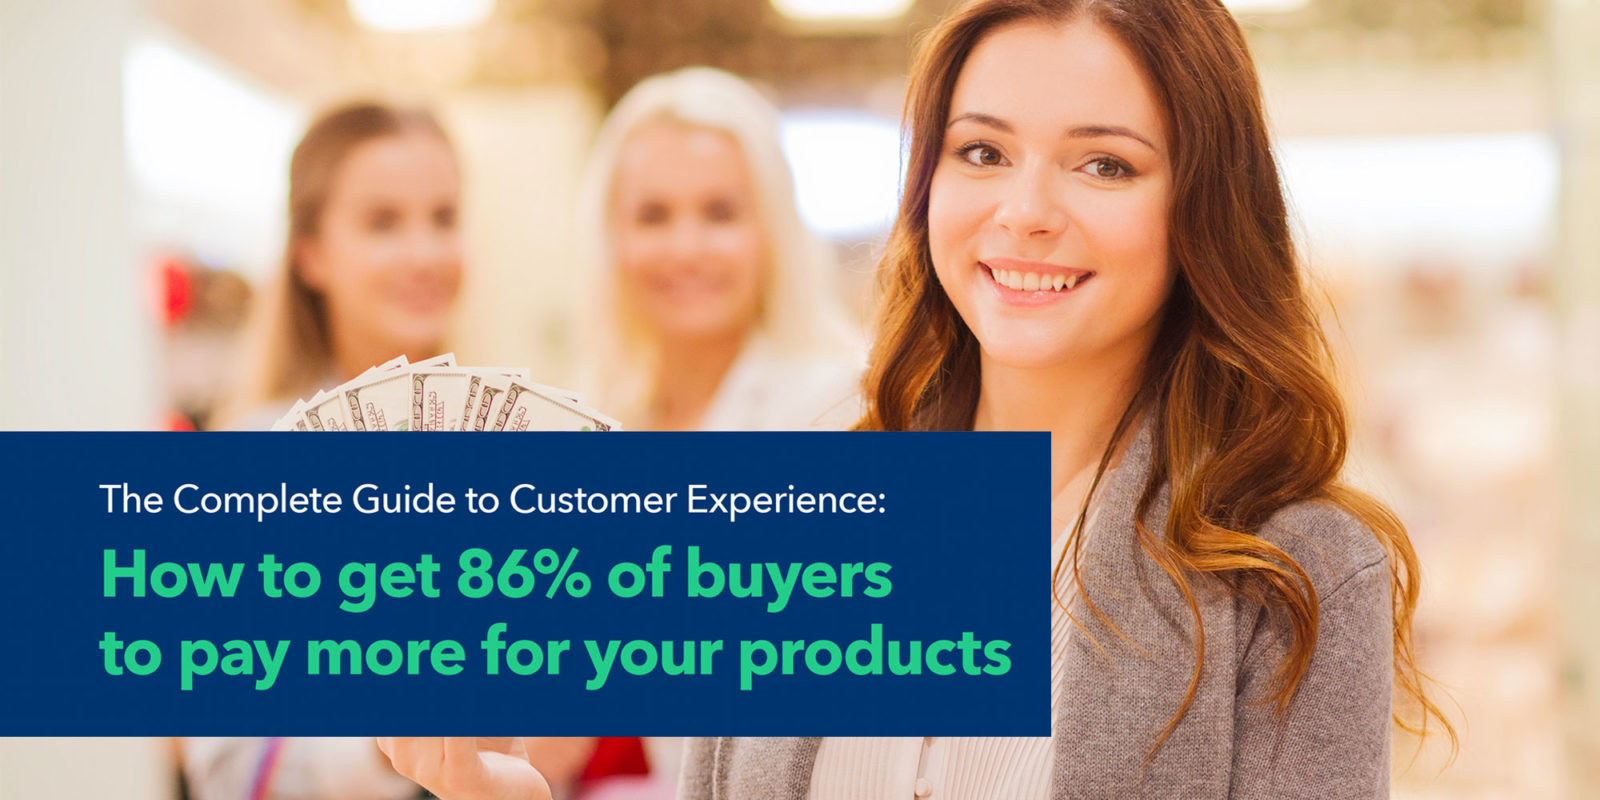 The Complete Guide to Customer Experience